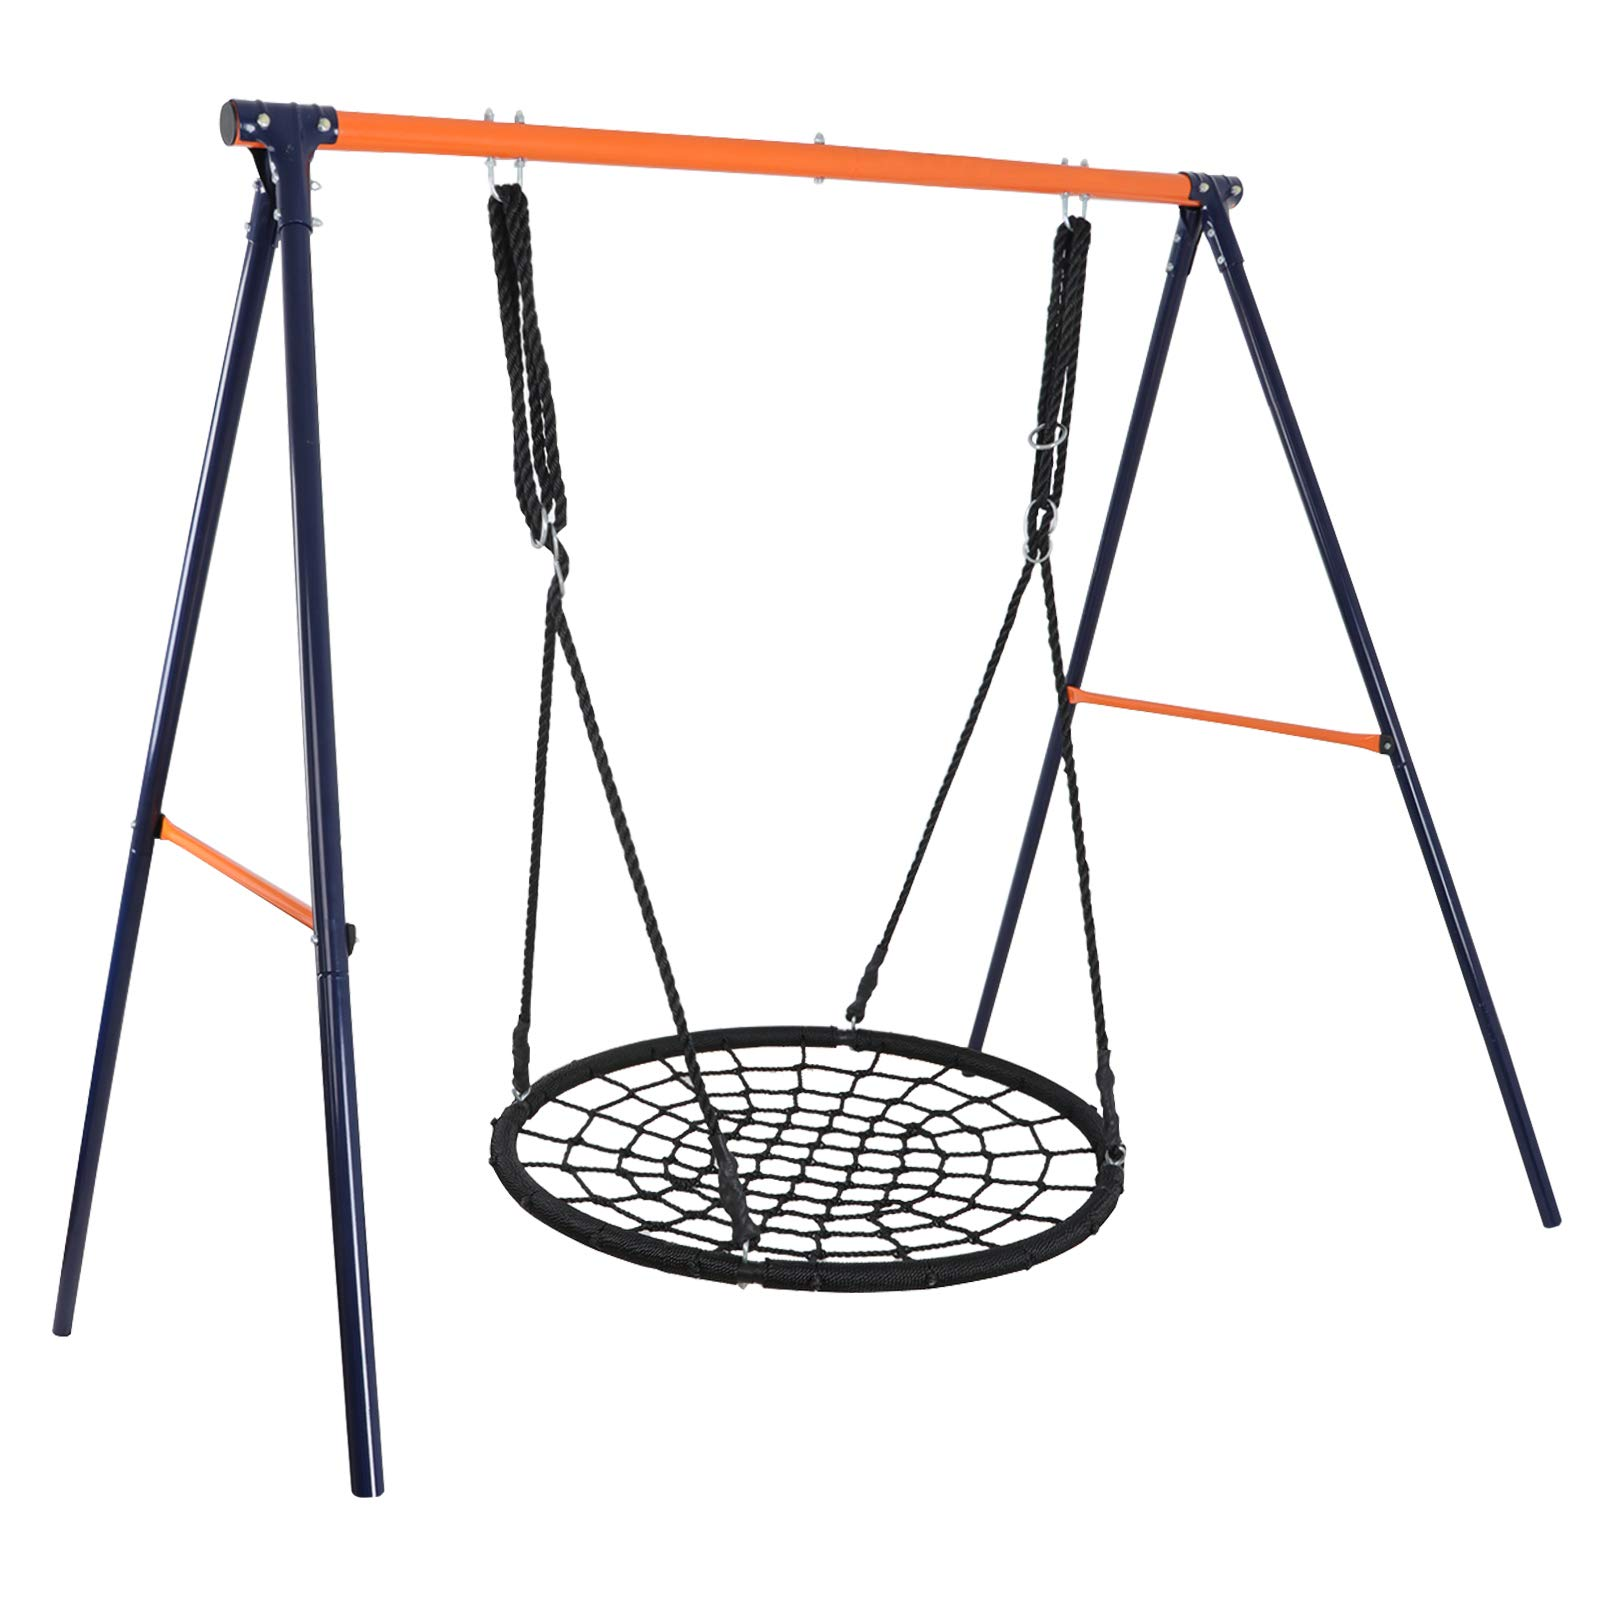 ZENY Swing Set - 24'' Spinner Web Tree Swing Nylon Rope + All Weather Steel A Swing Frame Stand,Great for Backyard Kids Play Fun by ZENY (Image #2)